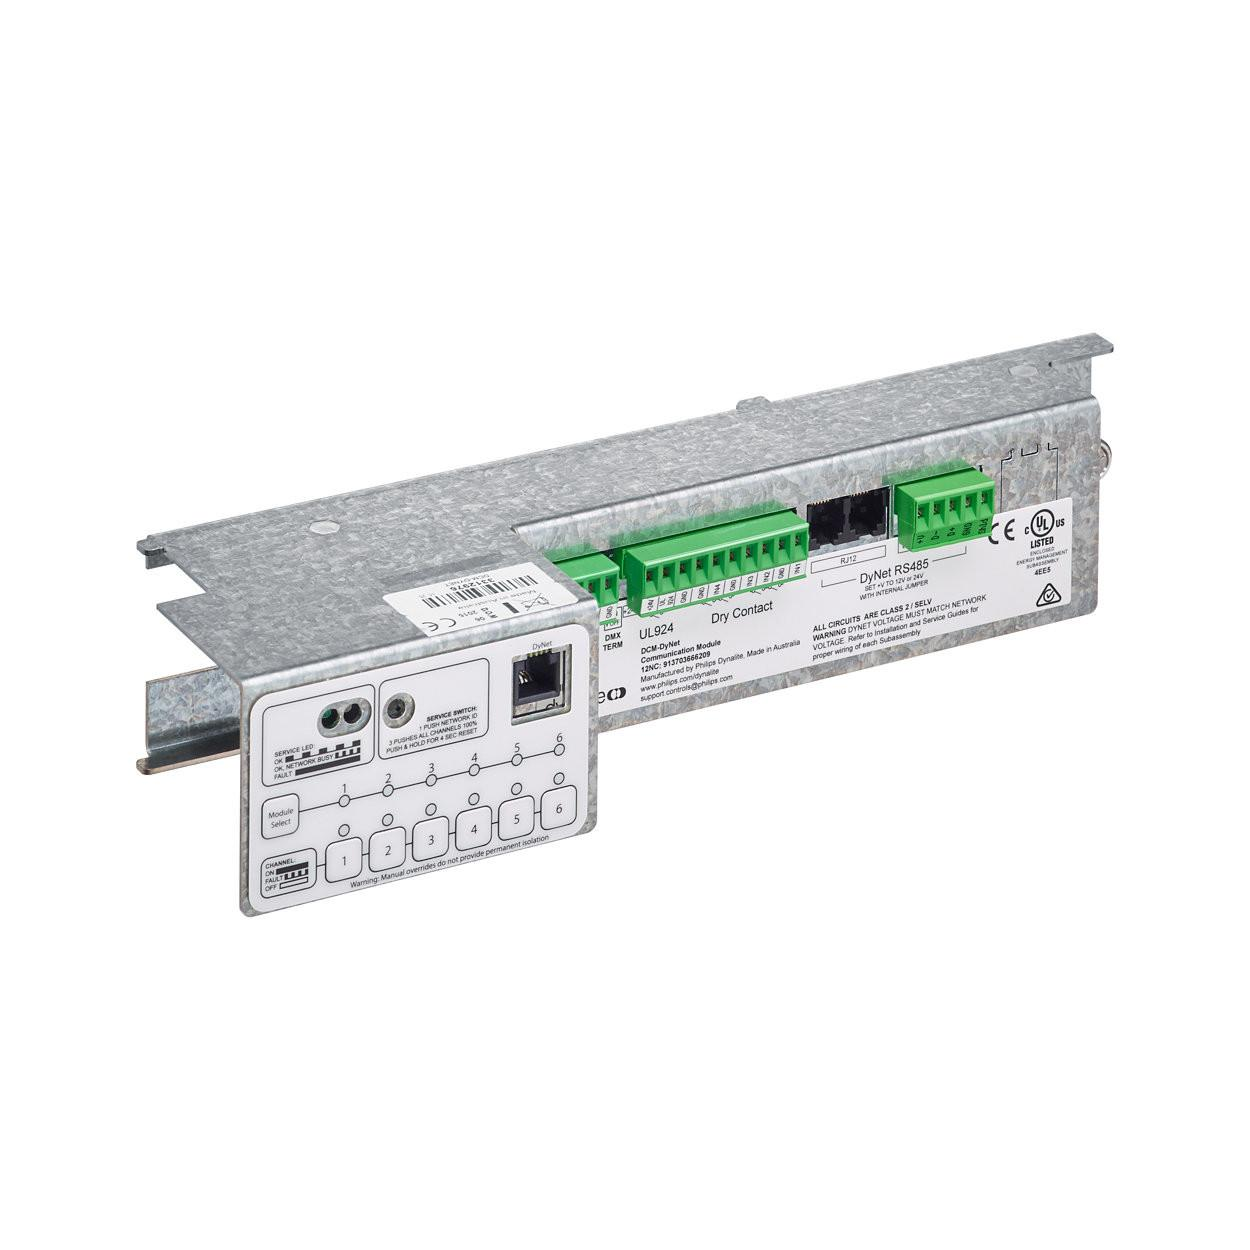 Dcm Dynet Dynalite Multipurpose Controllers Philips Lighting